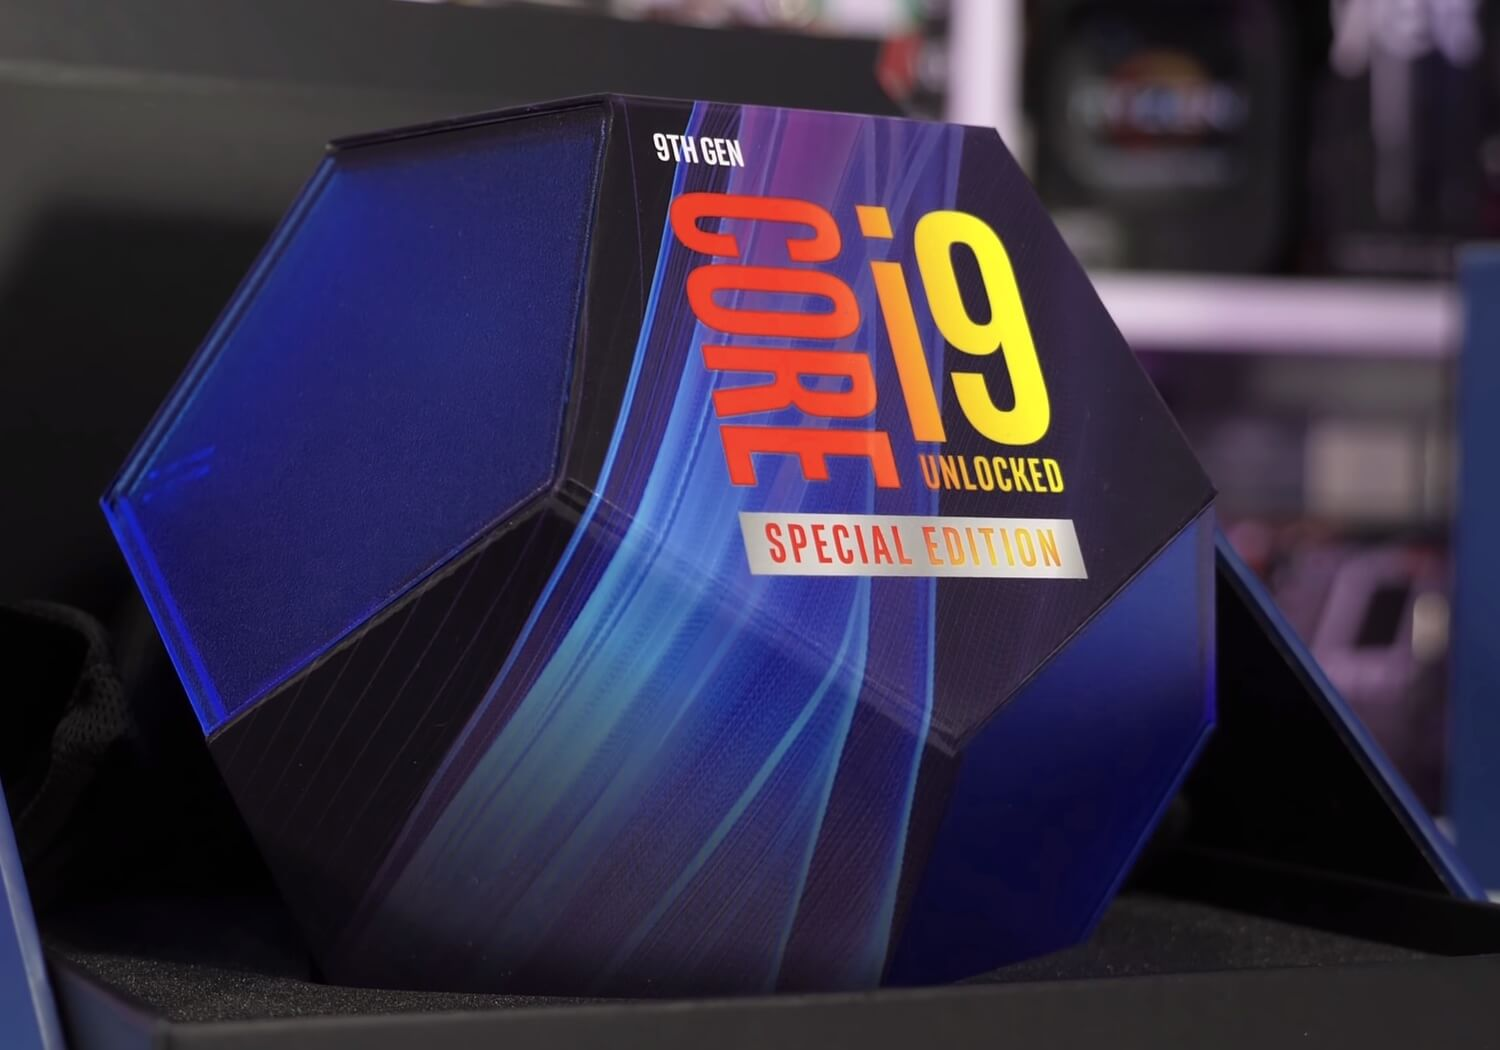 High-end Intel 10th gen desktop CPUs are quite power hungry